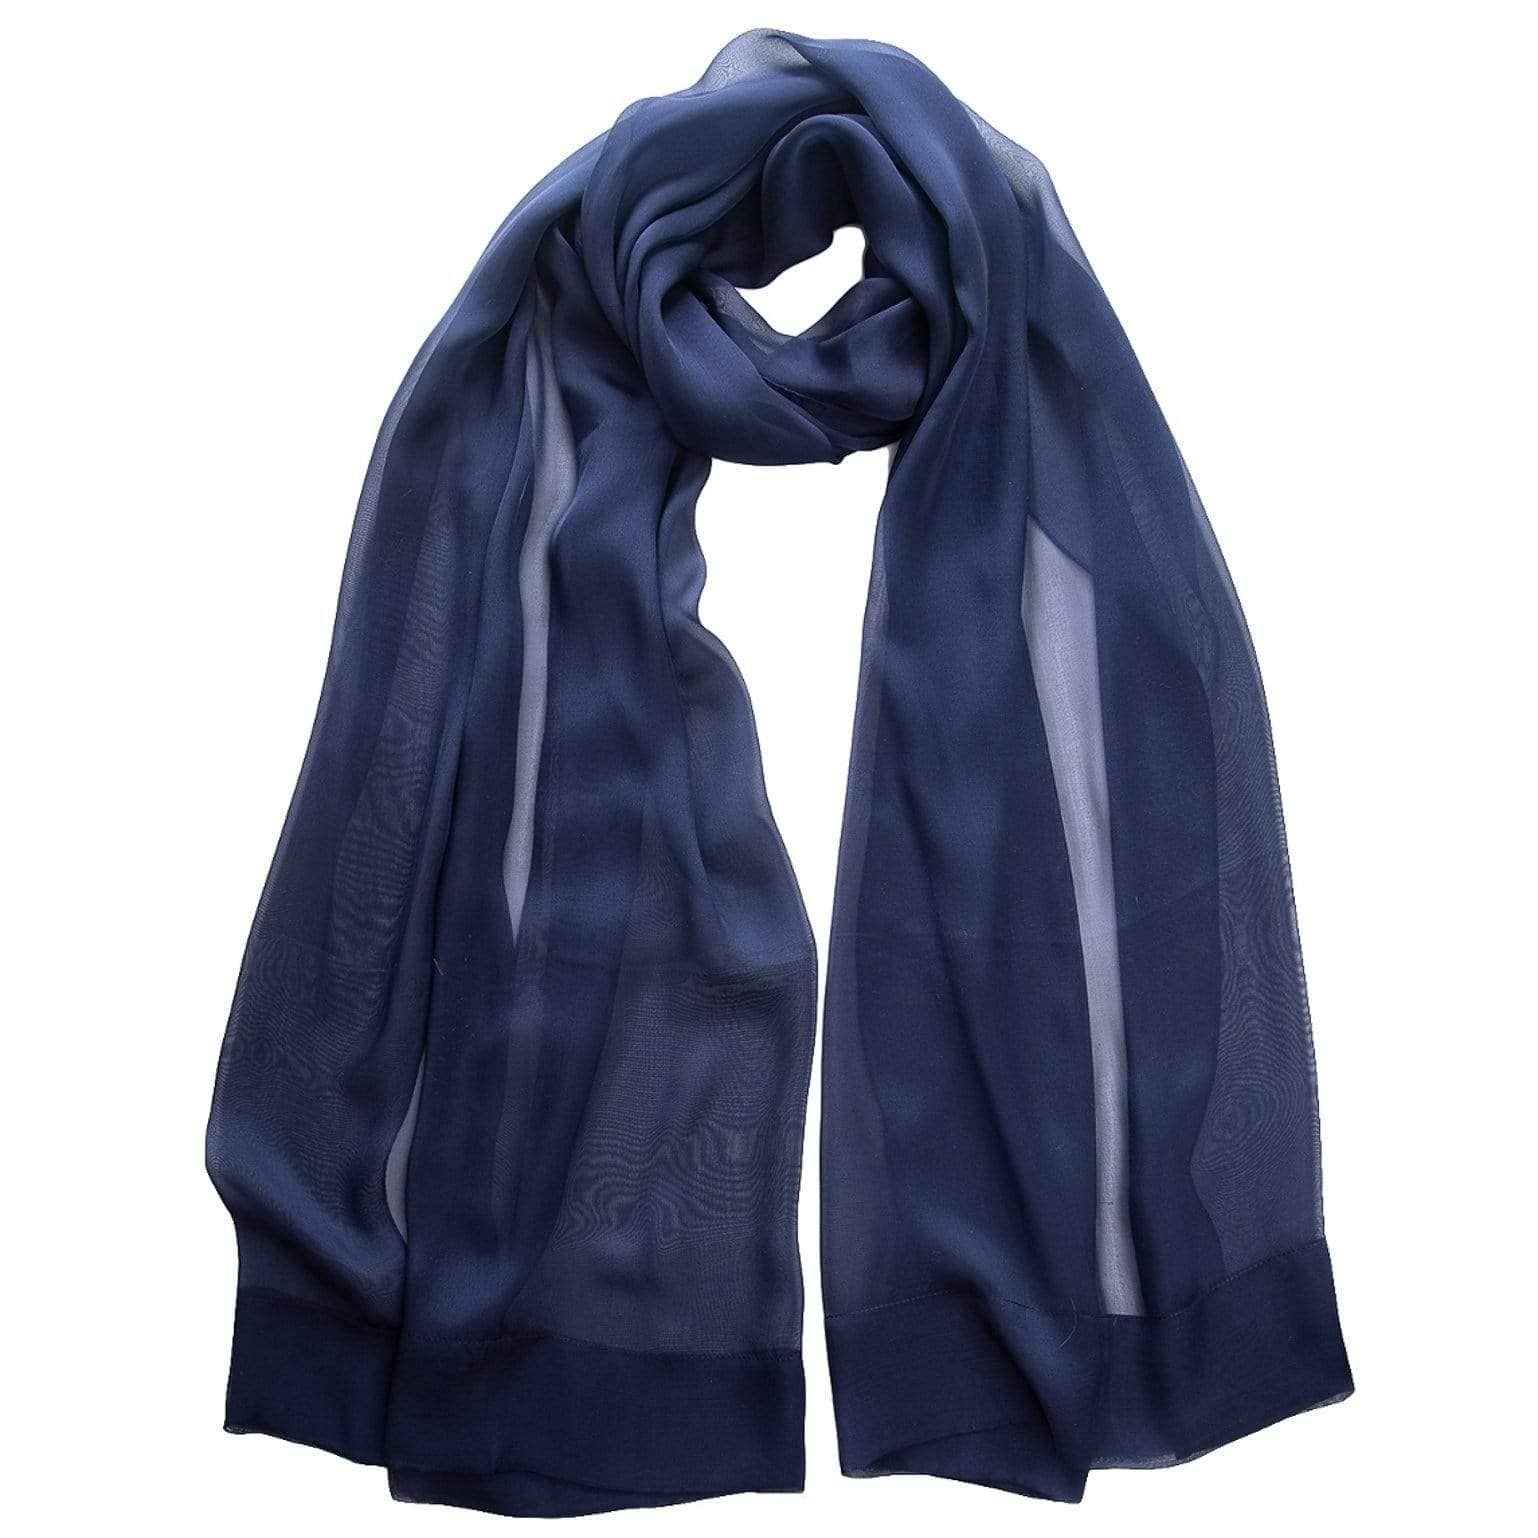 Chiffon Shawl - Navy Blue Sheer Silk Evening Wrap